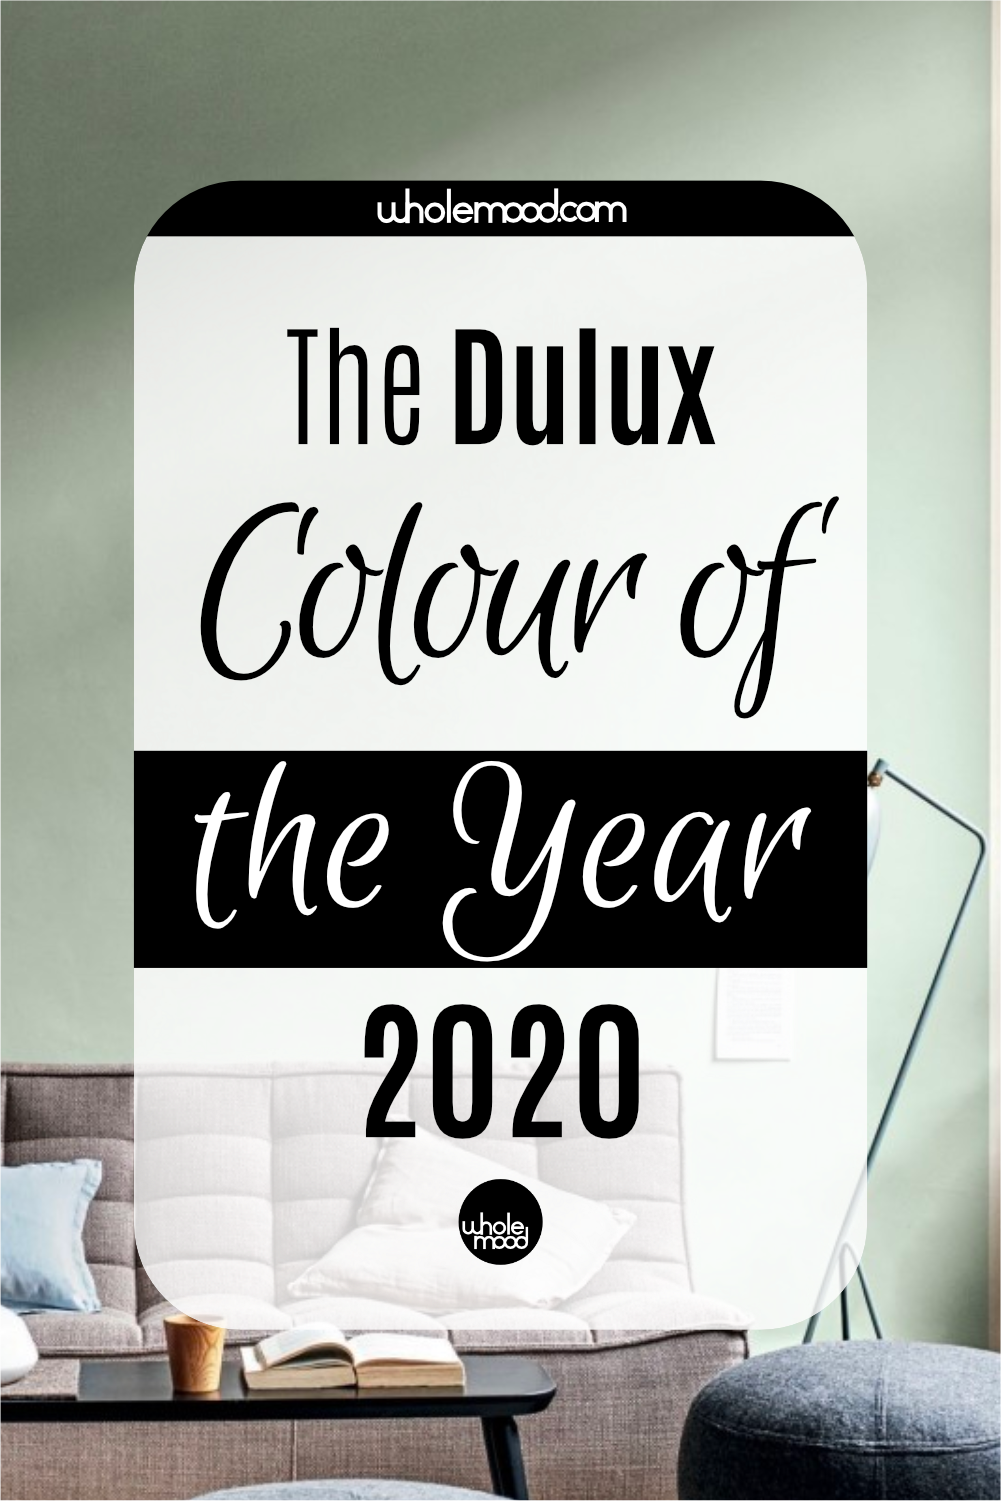 2020 2021 colour of the year new decade cool new tone on sherwin williams 2021 color trends id=66482